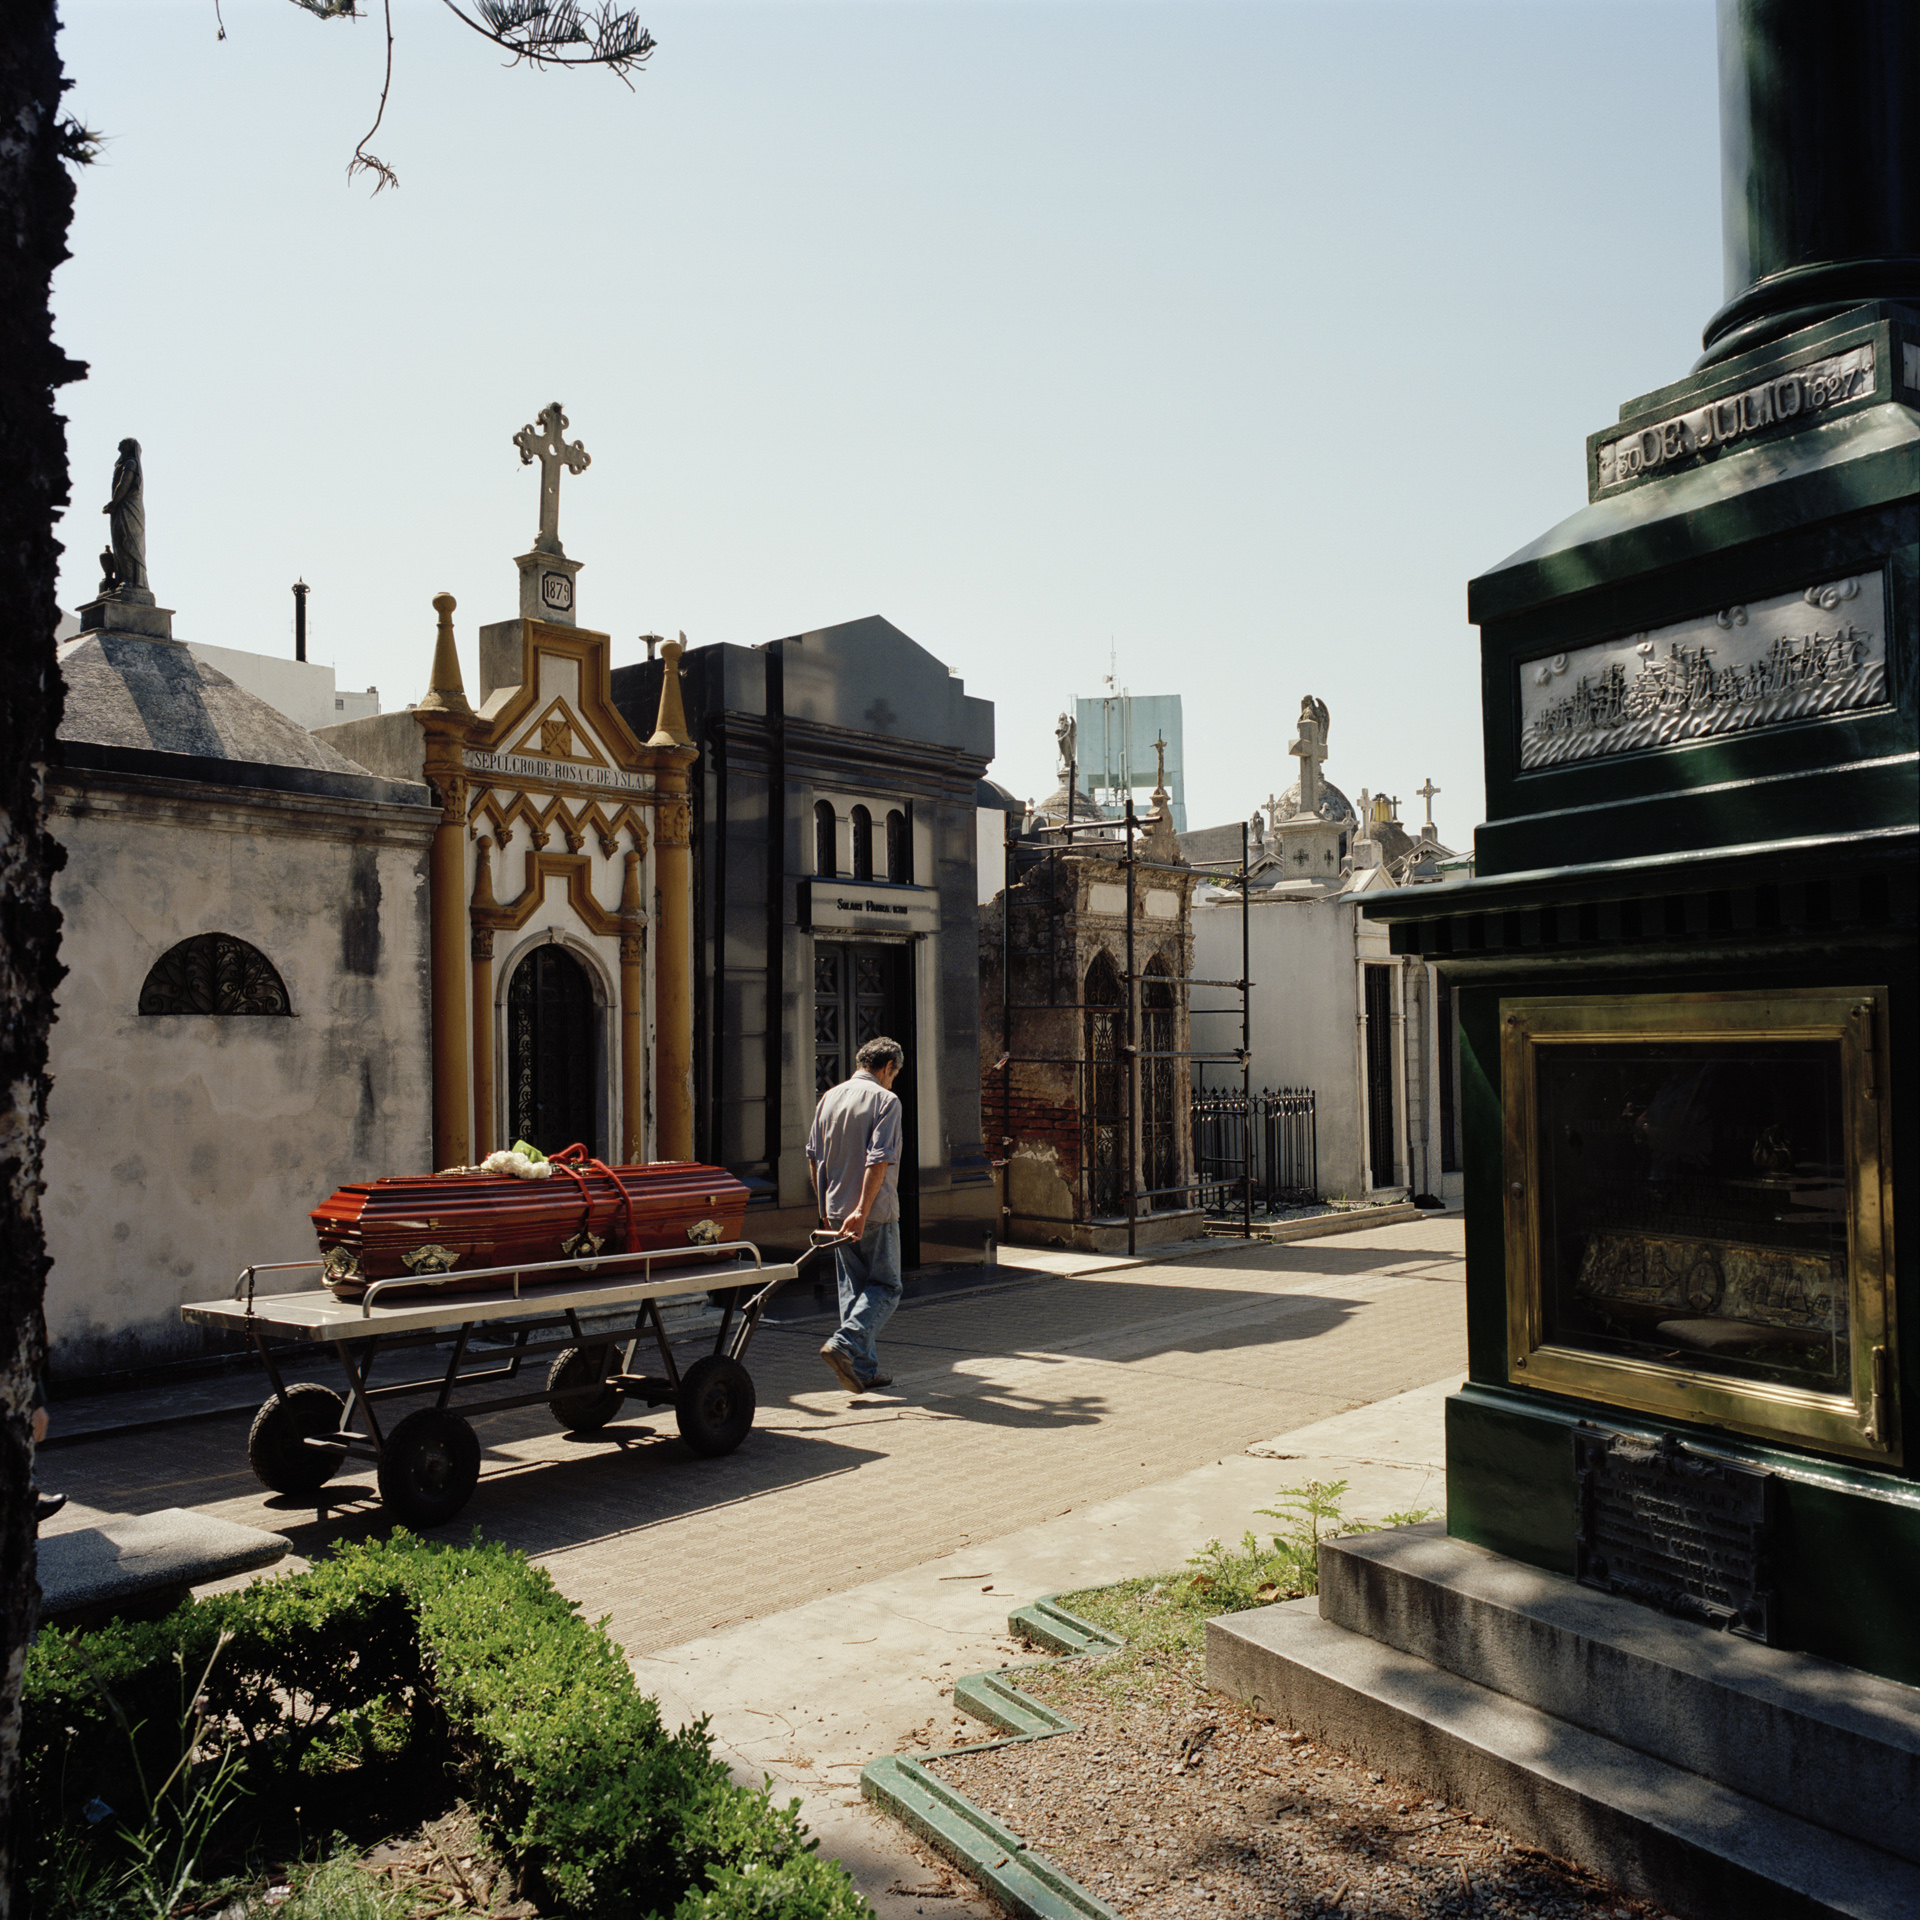 La Recoleta Cemetery. The most well known cemetery in Buenos Aires, where many of the city's most famous and wealthy citizens are buried. A cemetery worker pulls a coffin durig a funeral procession.